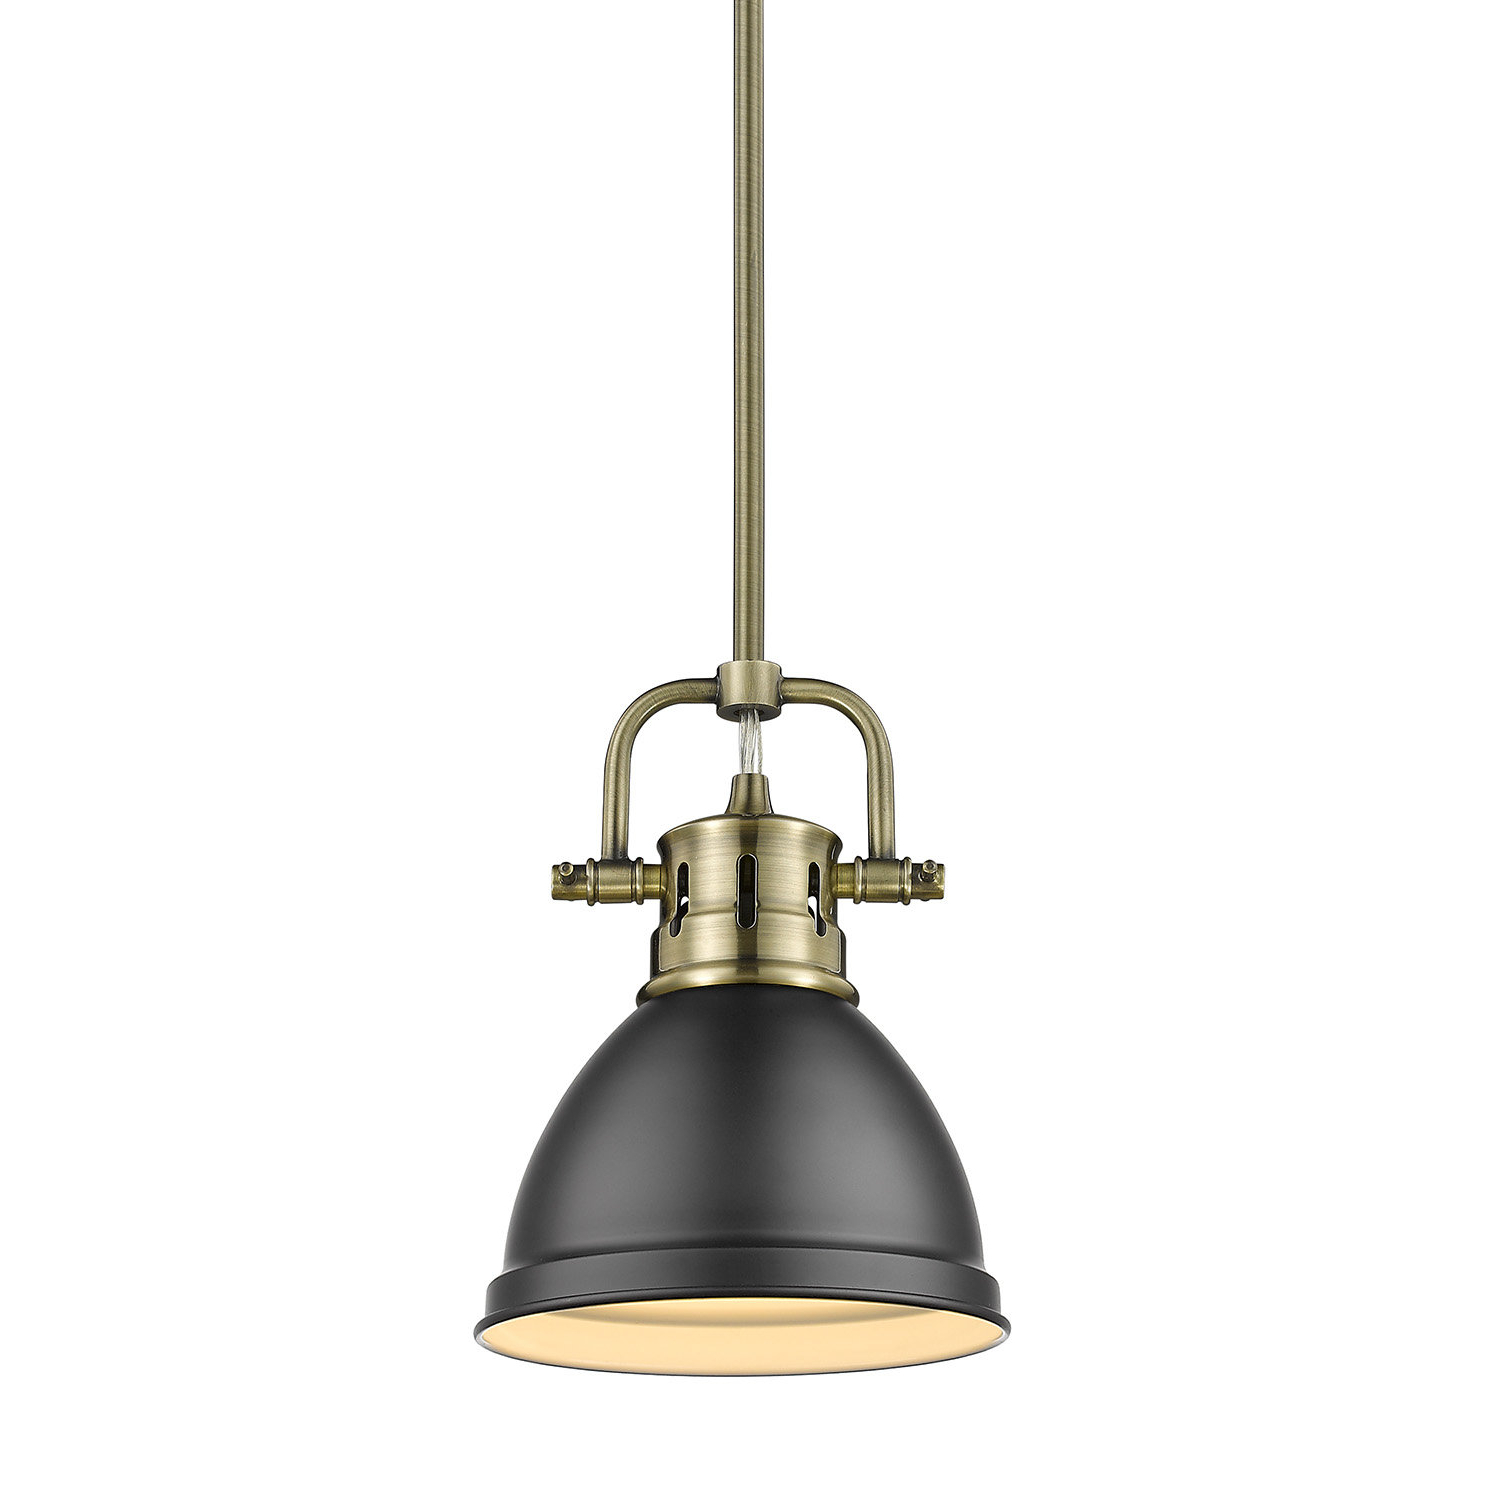 Bodalla 1-Light Single Bell Pendant with Current Bodalla 1-Light Single Bell Pendants